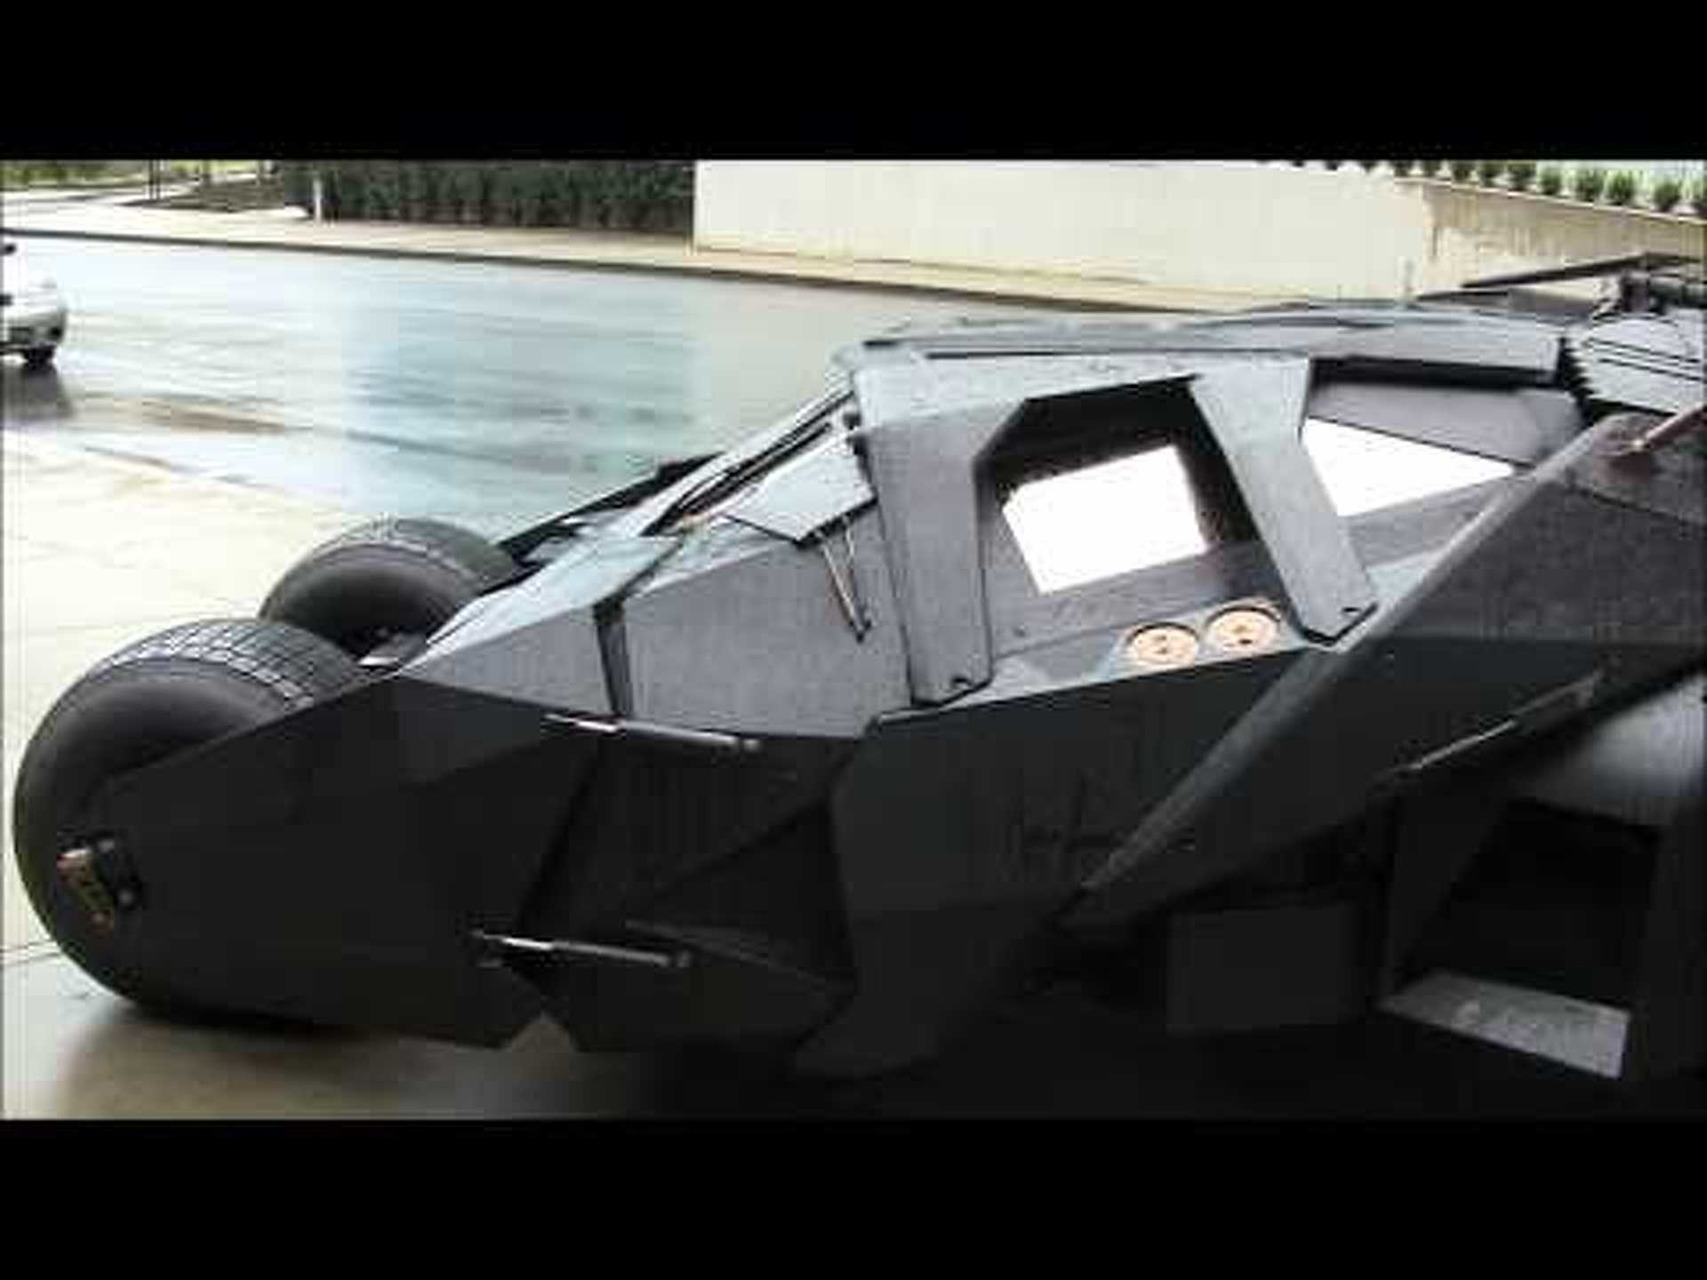 The Dark Knight's batmobile at Electronic Arts Vancouver